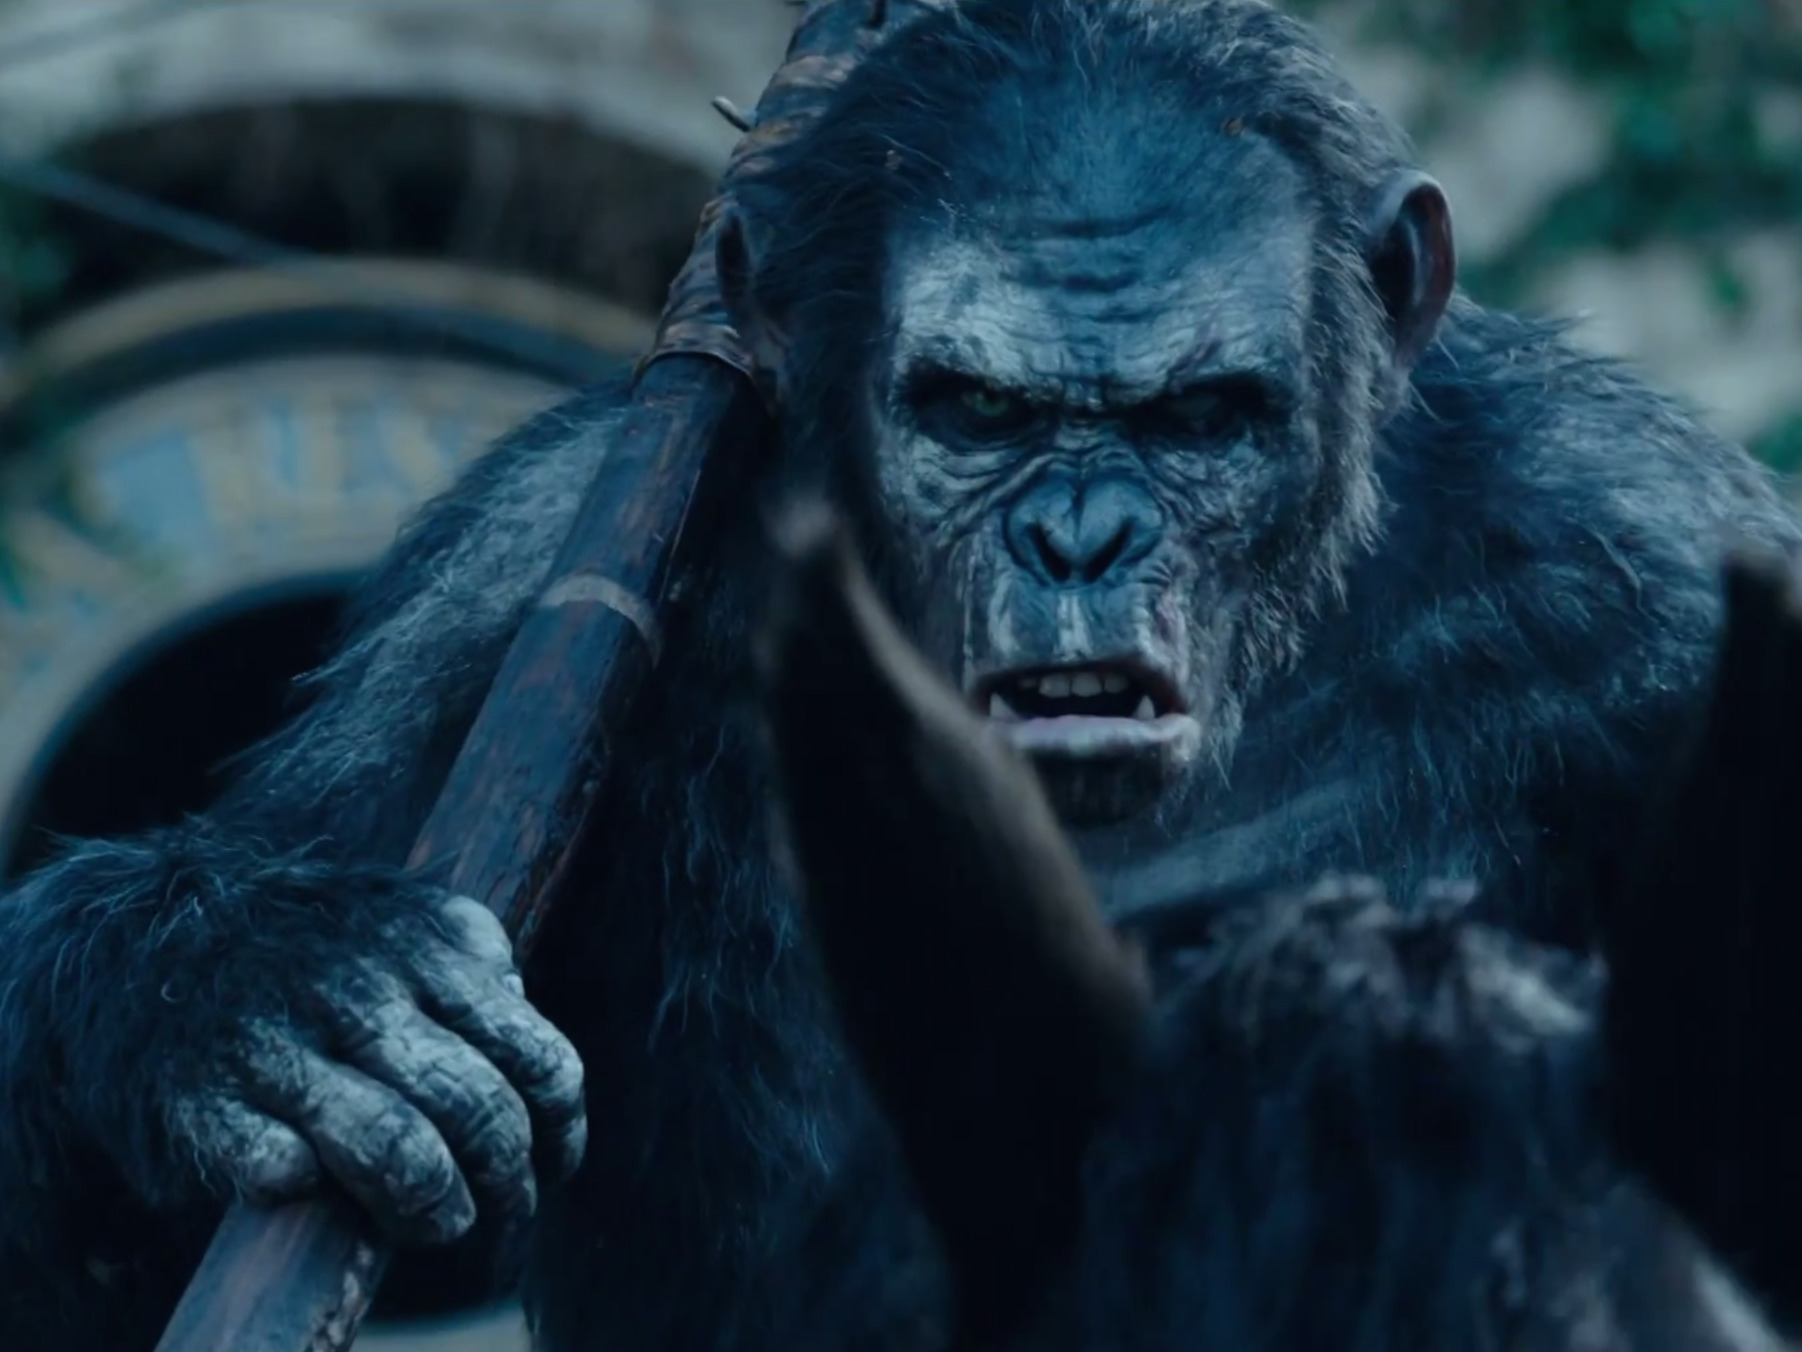 dawn of the planet of the apes movie hd wallpaper of gorilla | hd